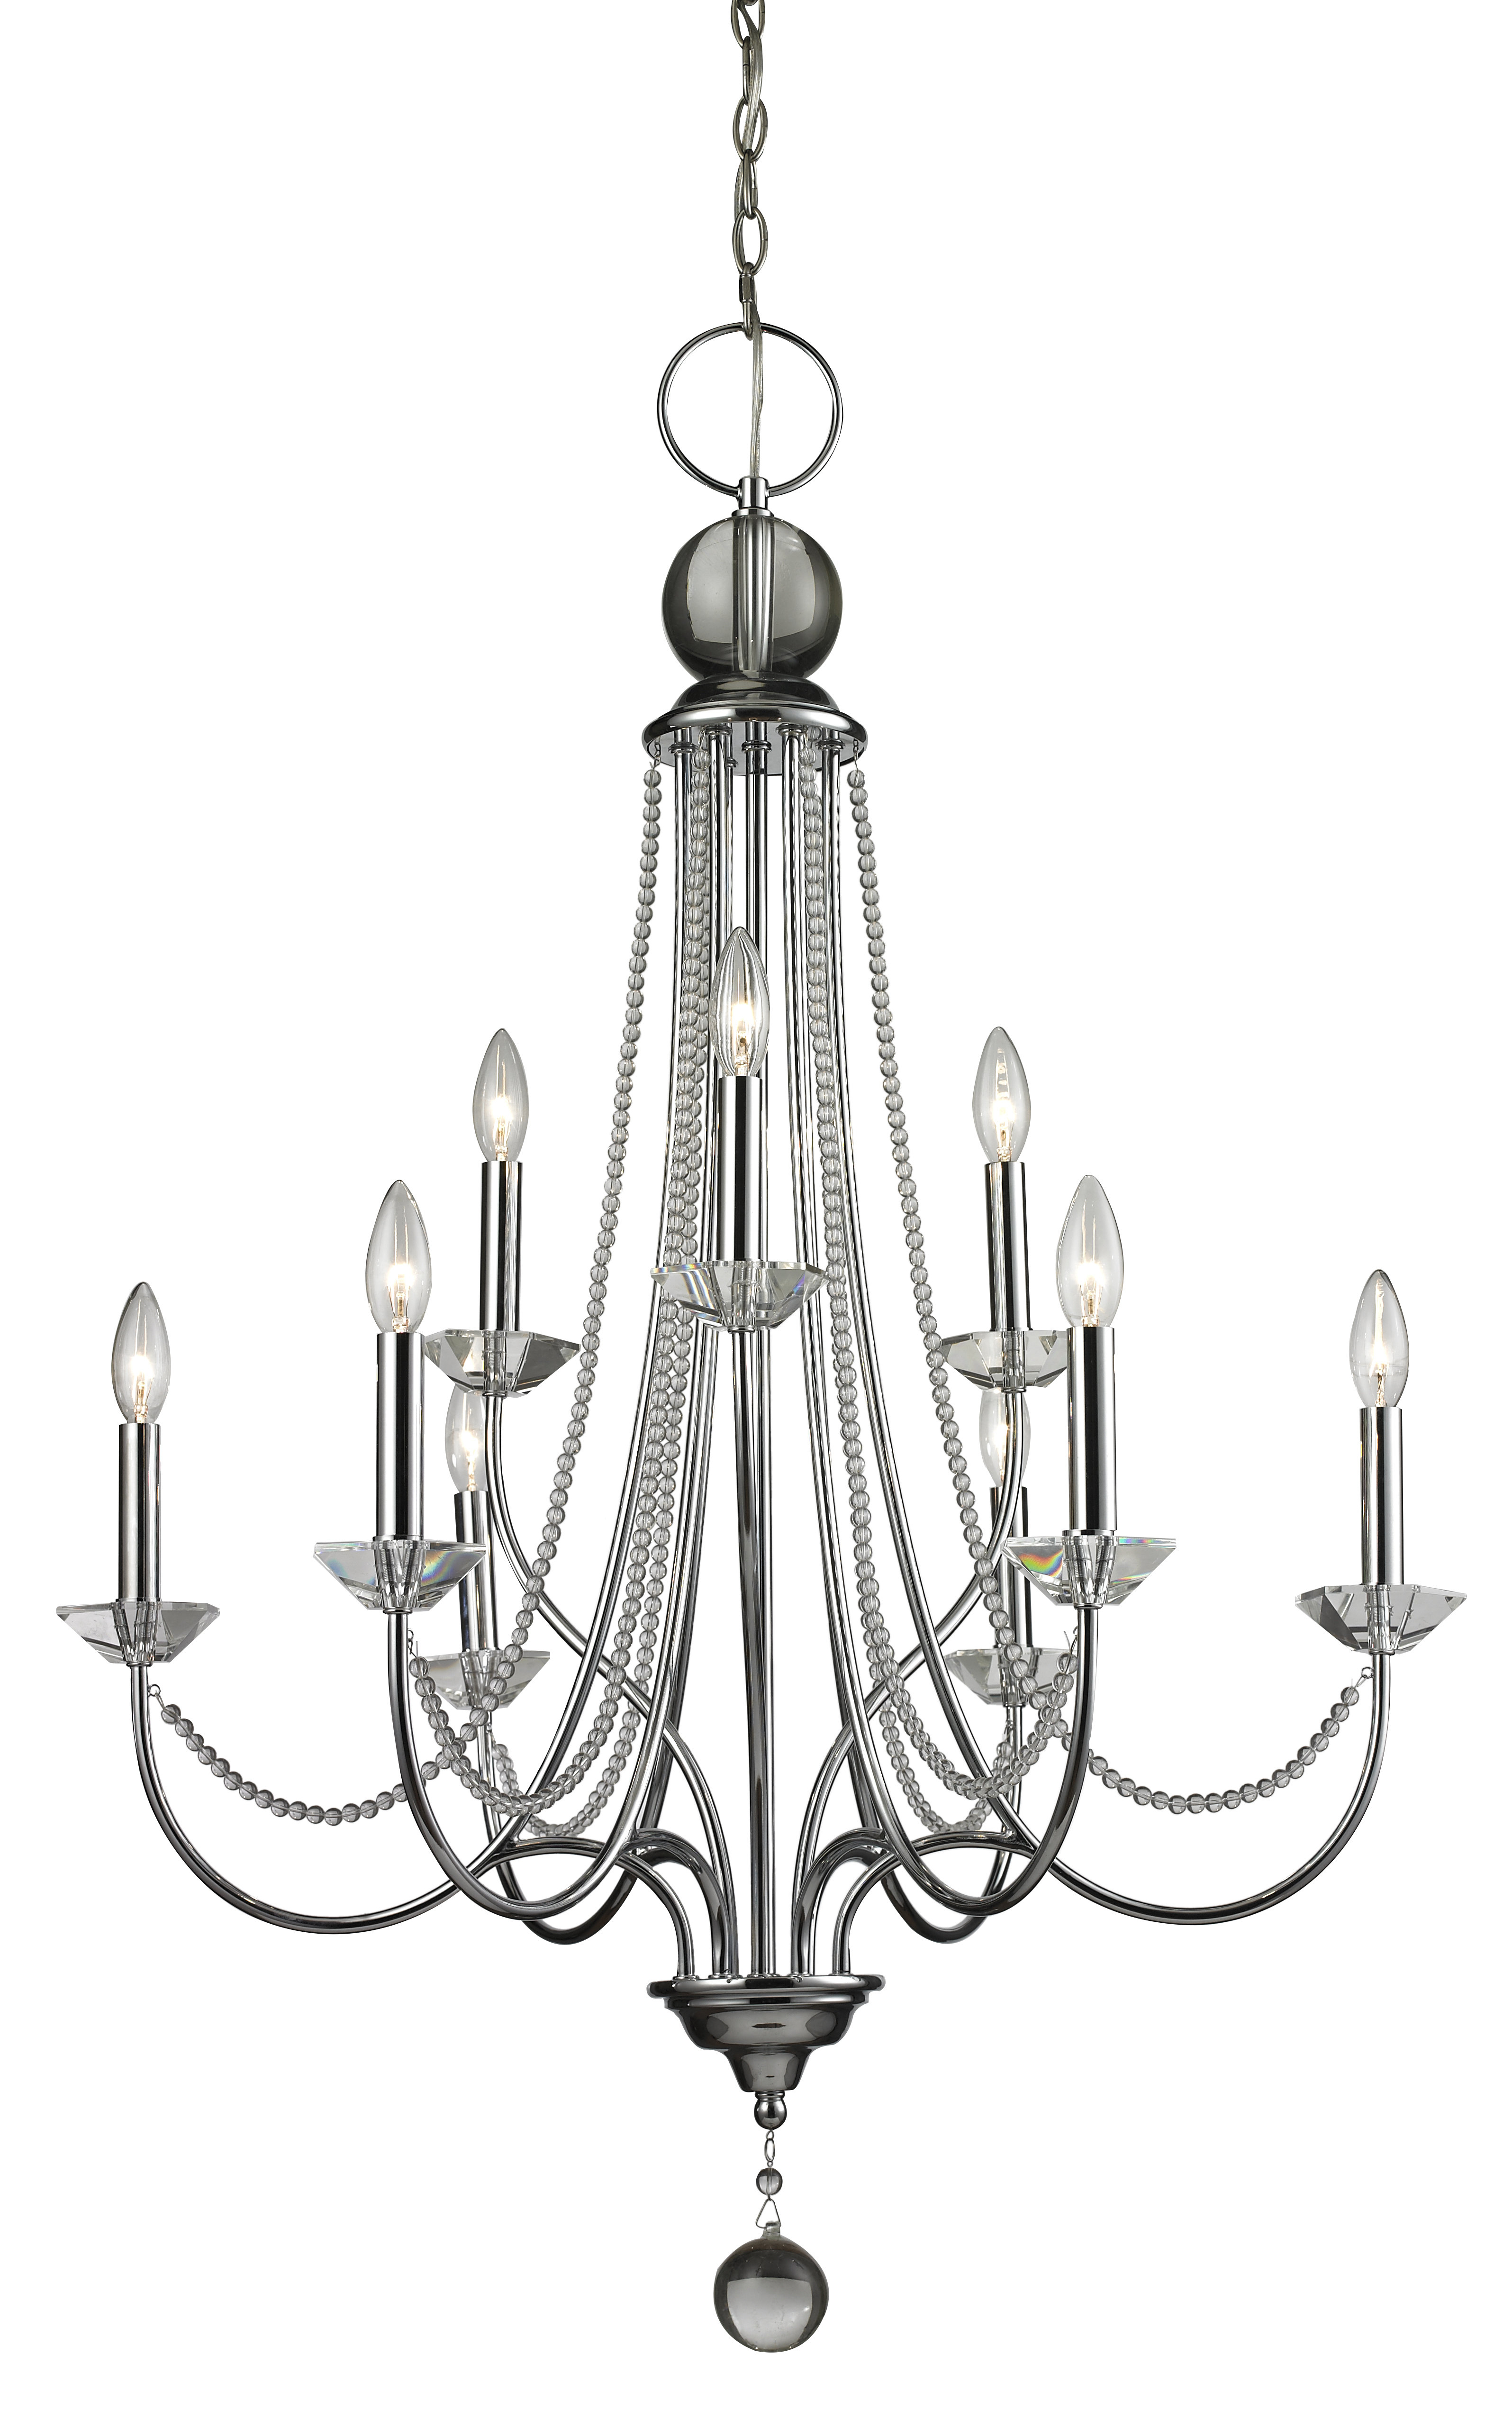 Patrice 9 Light Candle Style Chandelier In Gaines 9 Light Candle Style Chandeliers (View 11 of 30)